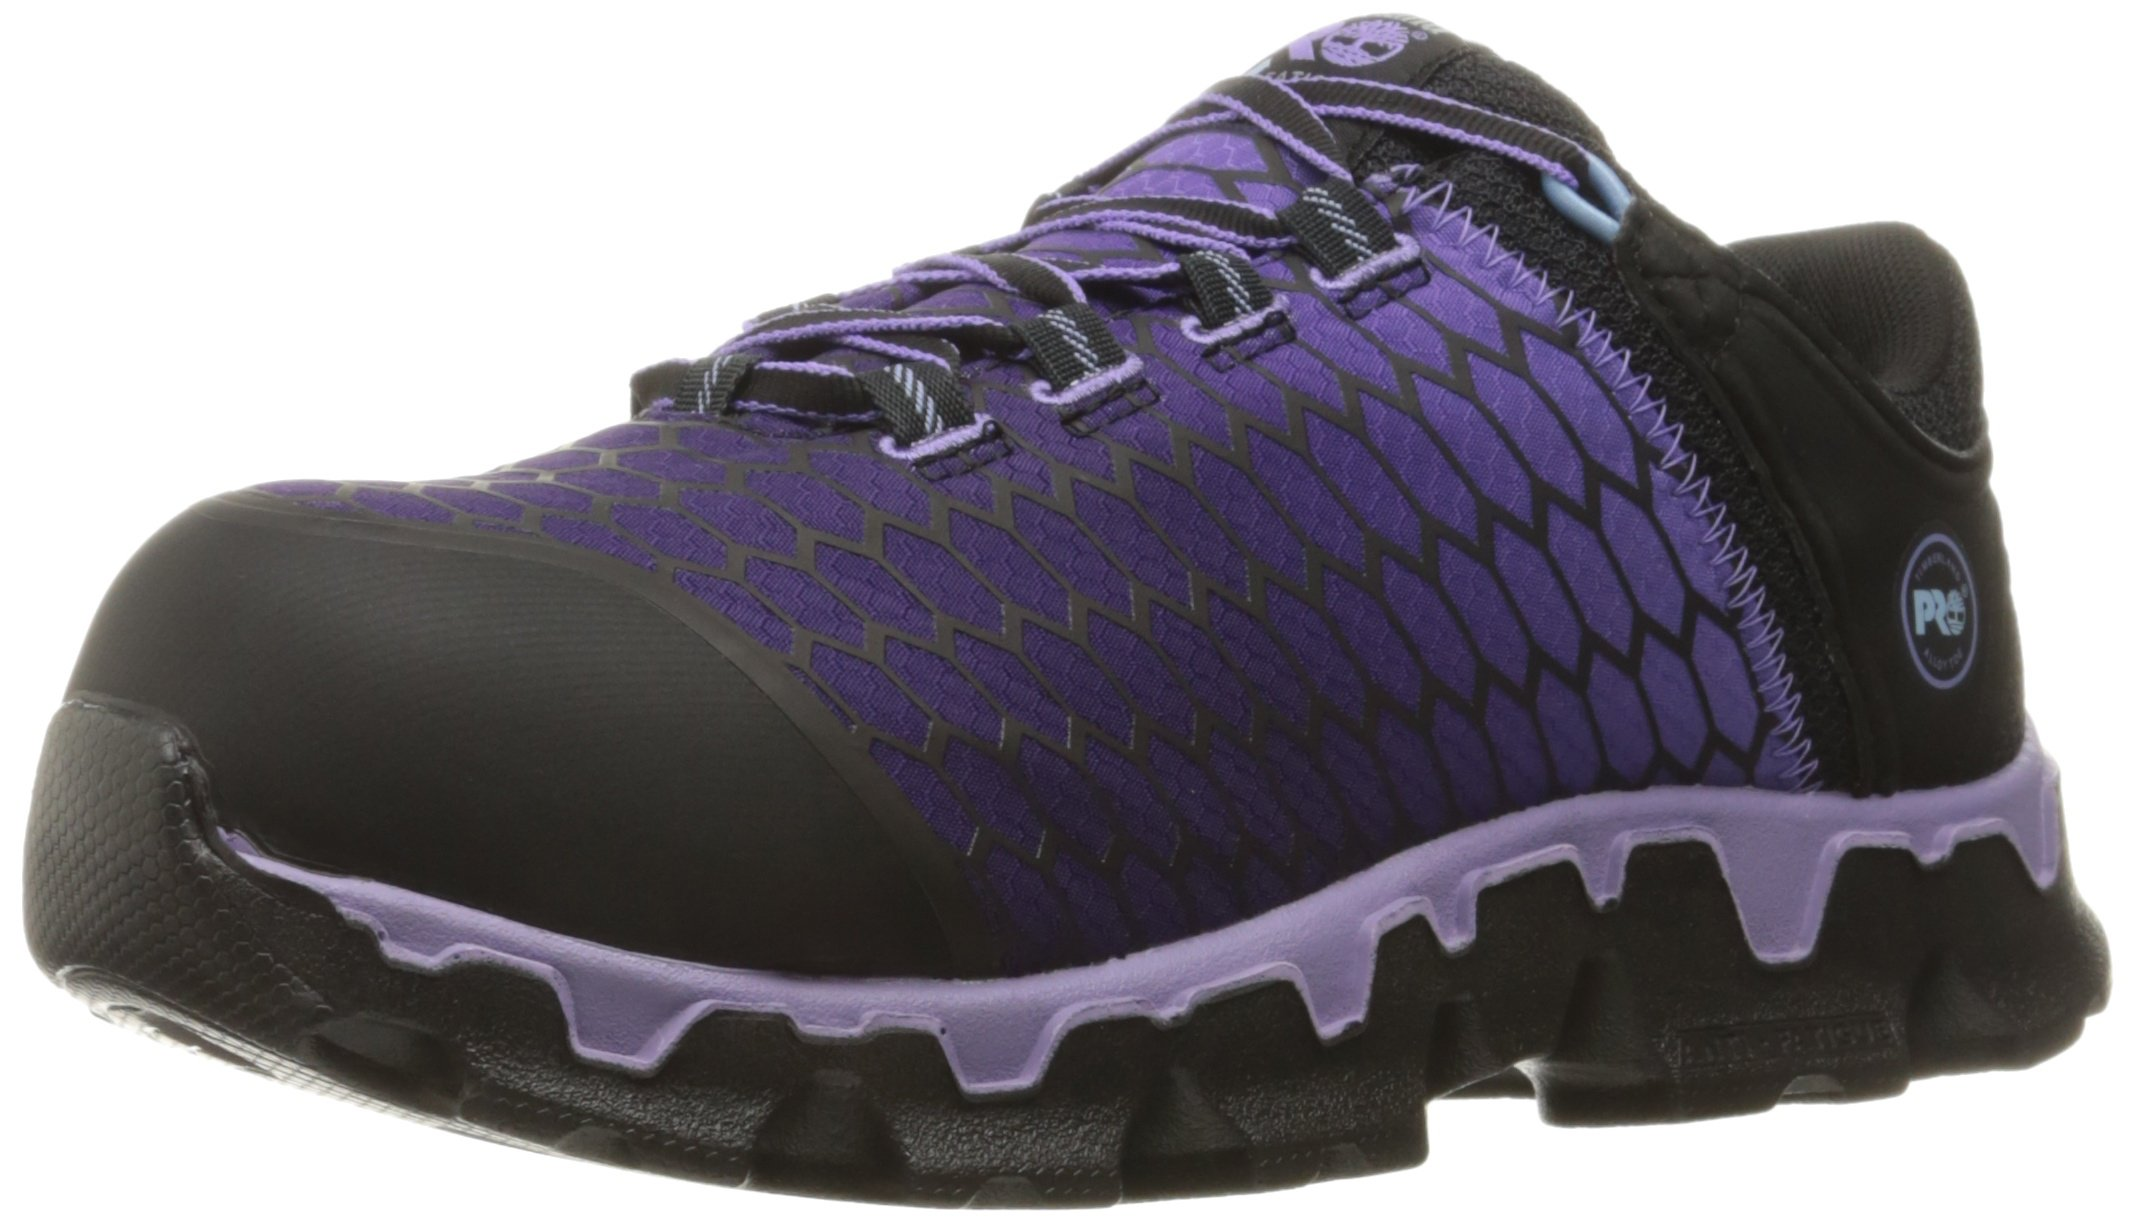 Timberland PRO Women's Powertrain Sport Alloy Toe SD+ Industrial and Construction Shoe, Black Synthetic/Lavender, 9 W US